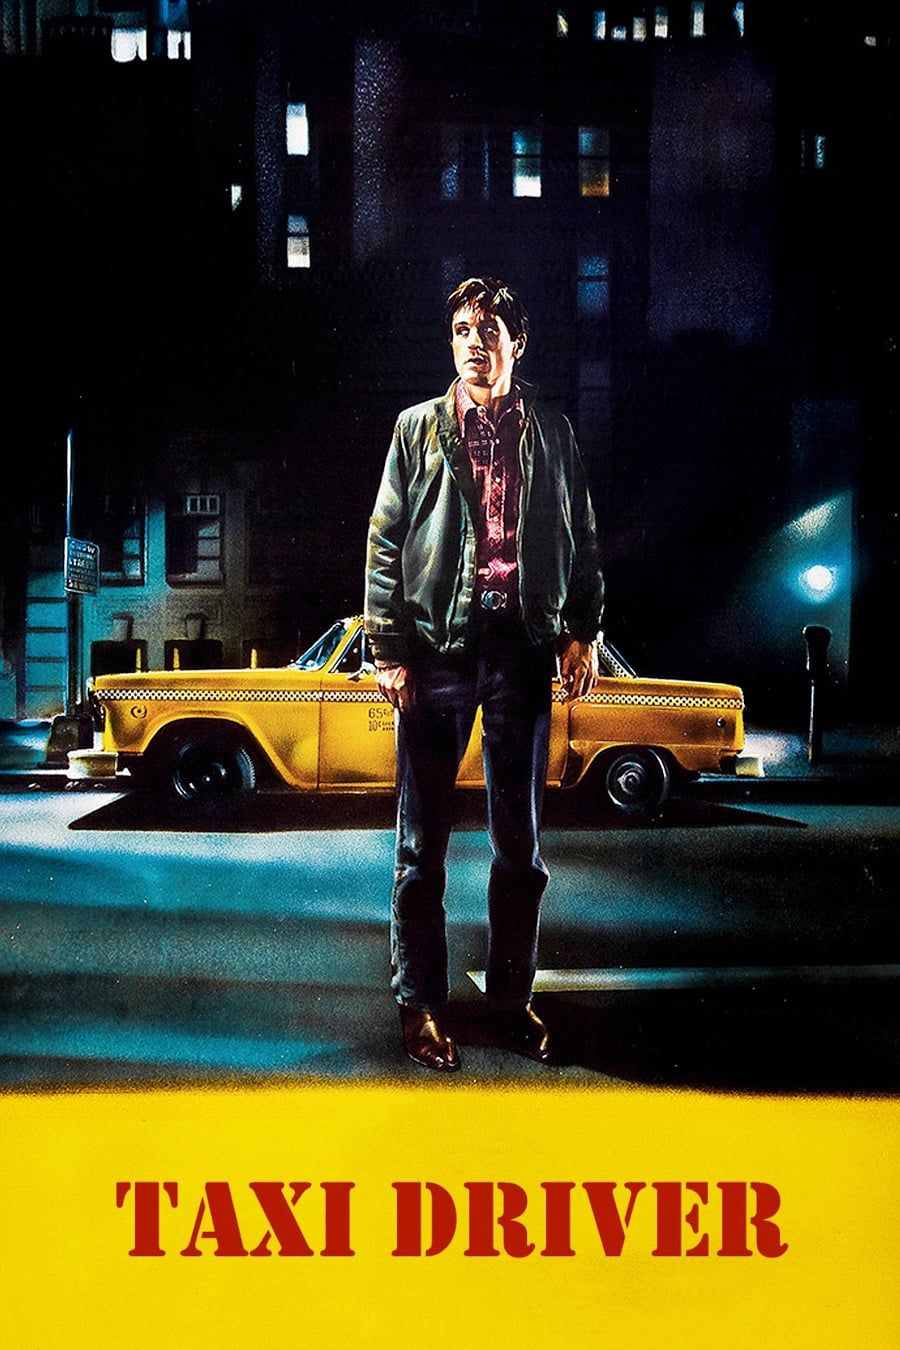 Taxi Driver 123movies 123movies, putlocker, poster,